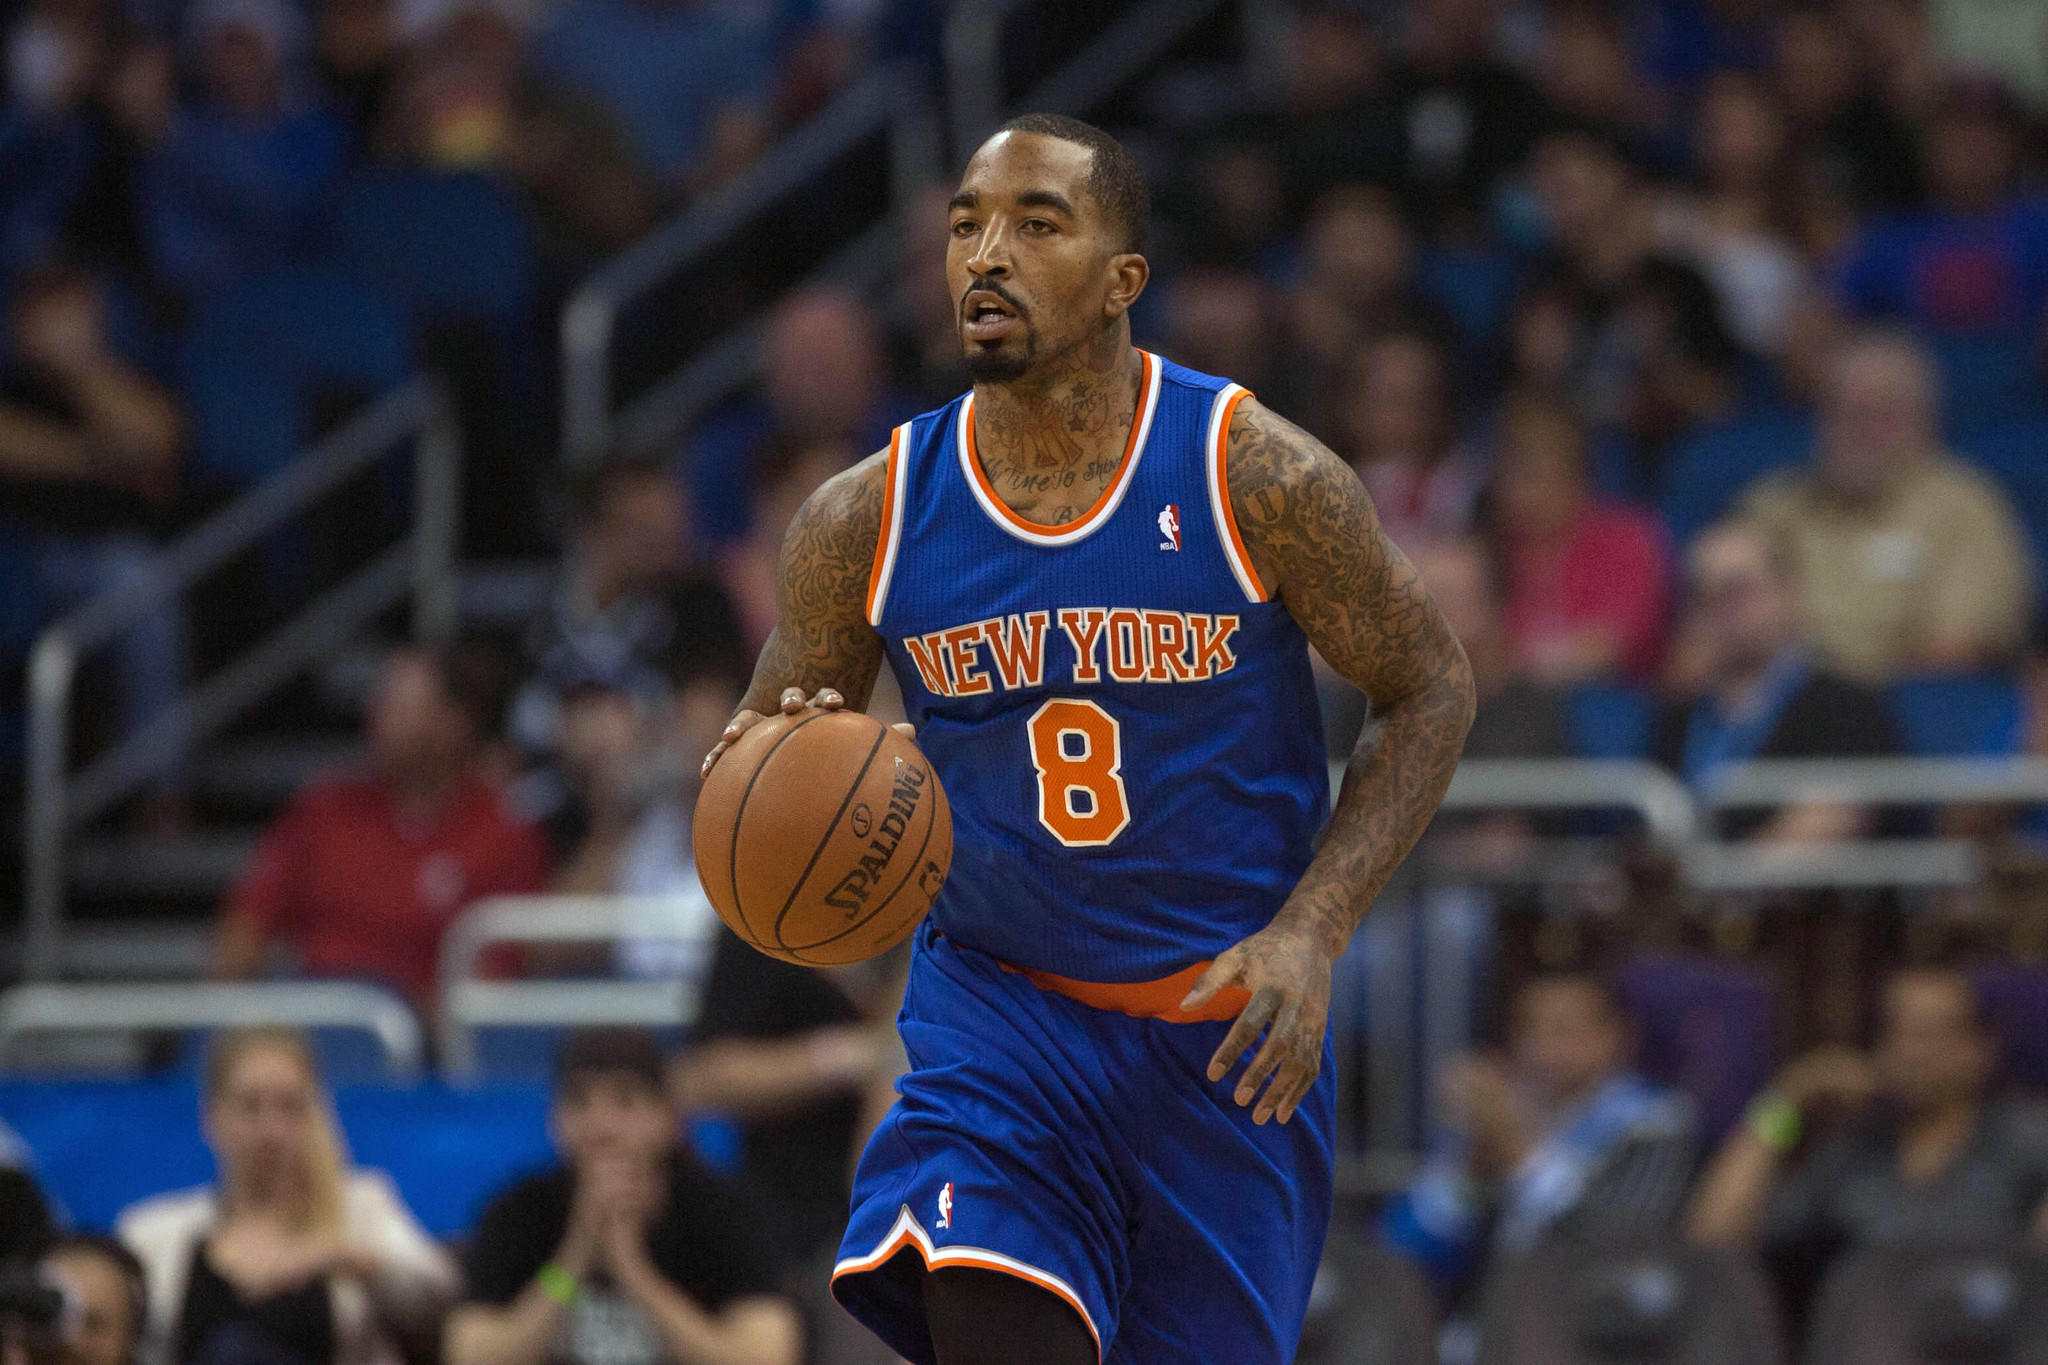 New York Knicks shooting guard J.R. Smith has been fined $50,000 by the NBA.